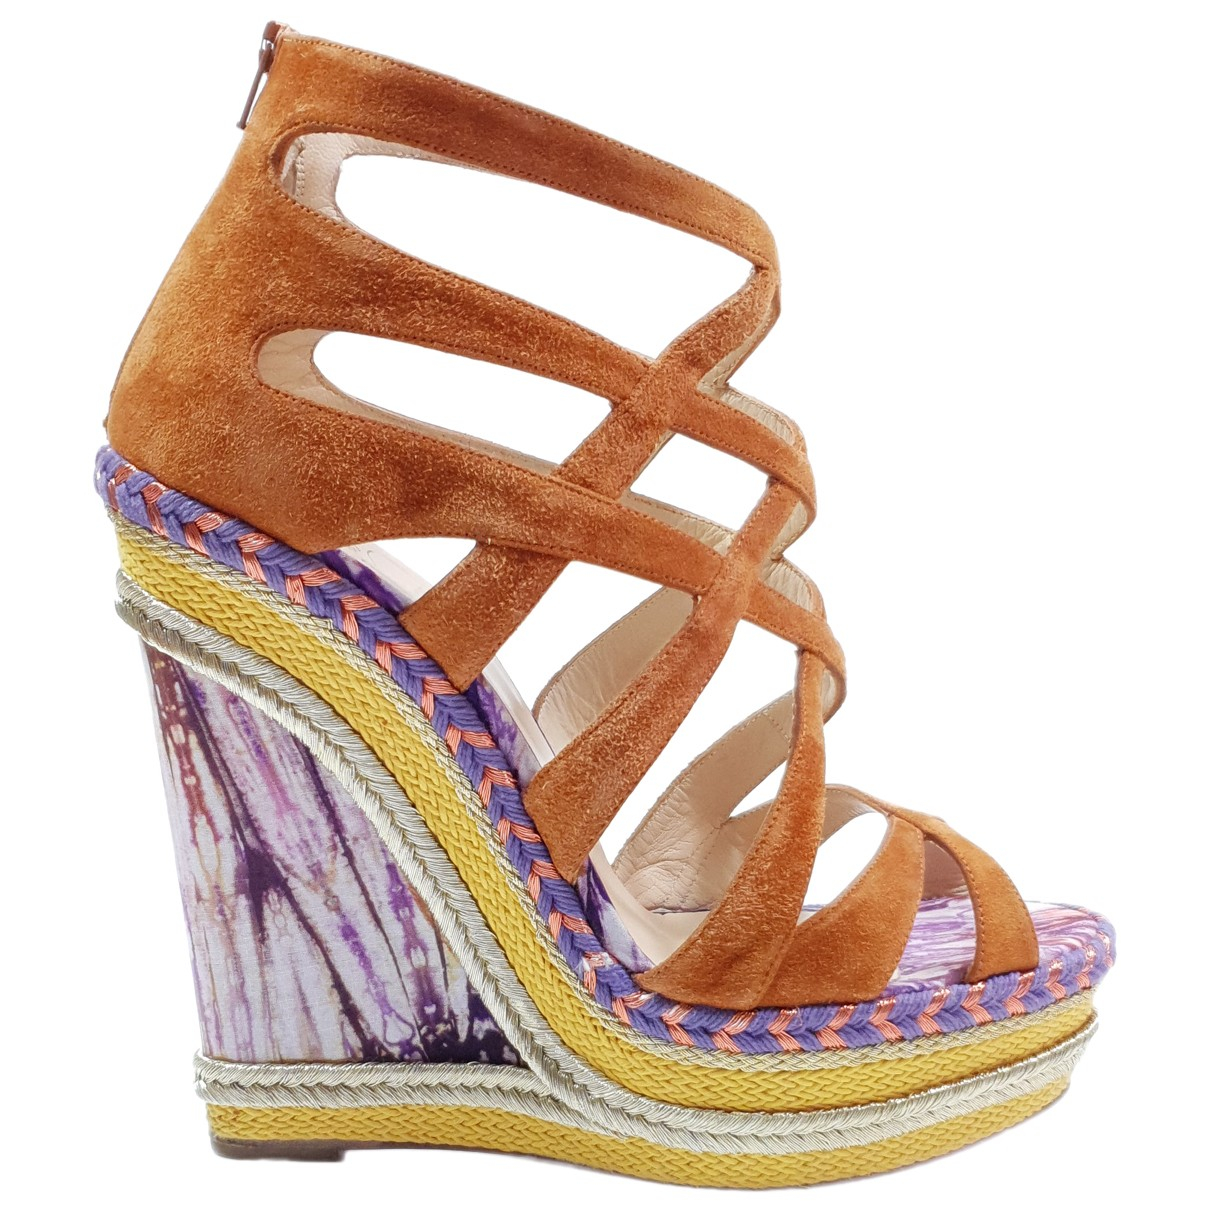 Christian Louboutin N Multicolour Leather Sandals for Women 39 EU